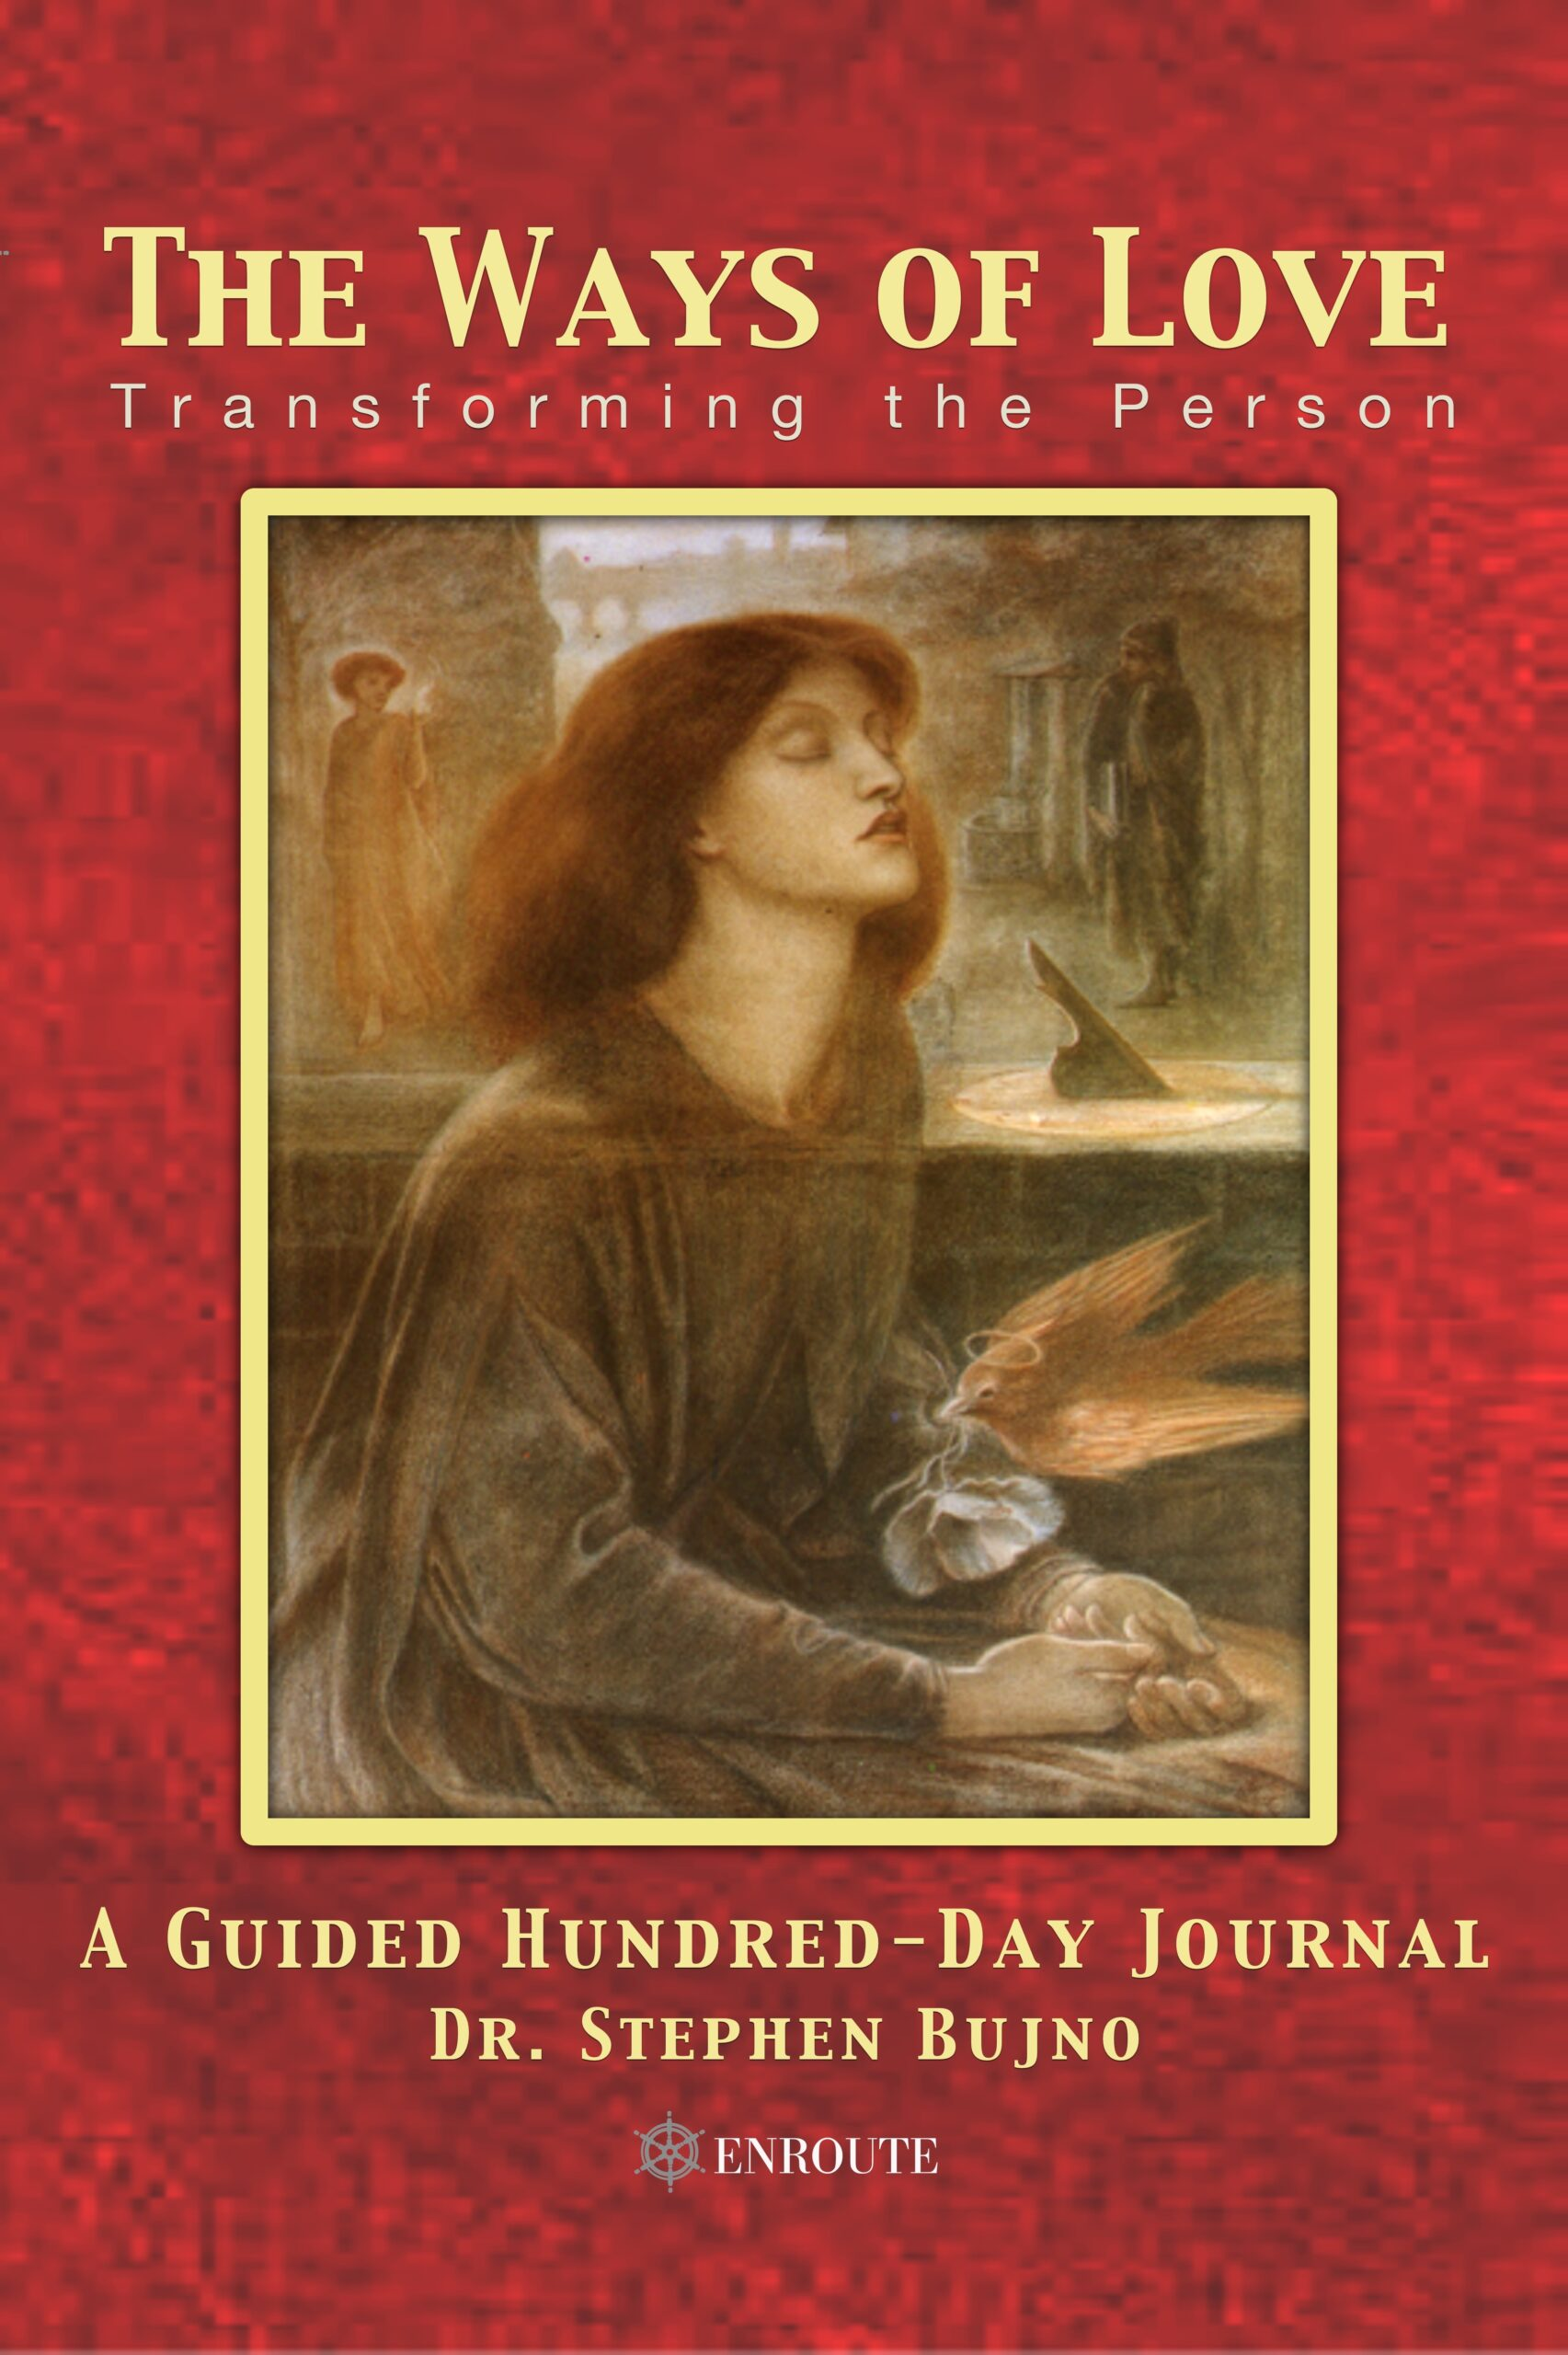 The Ways of Love: Transforming the Person, A Guided Hundred Day Journal